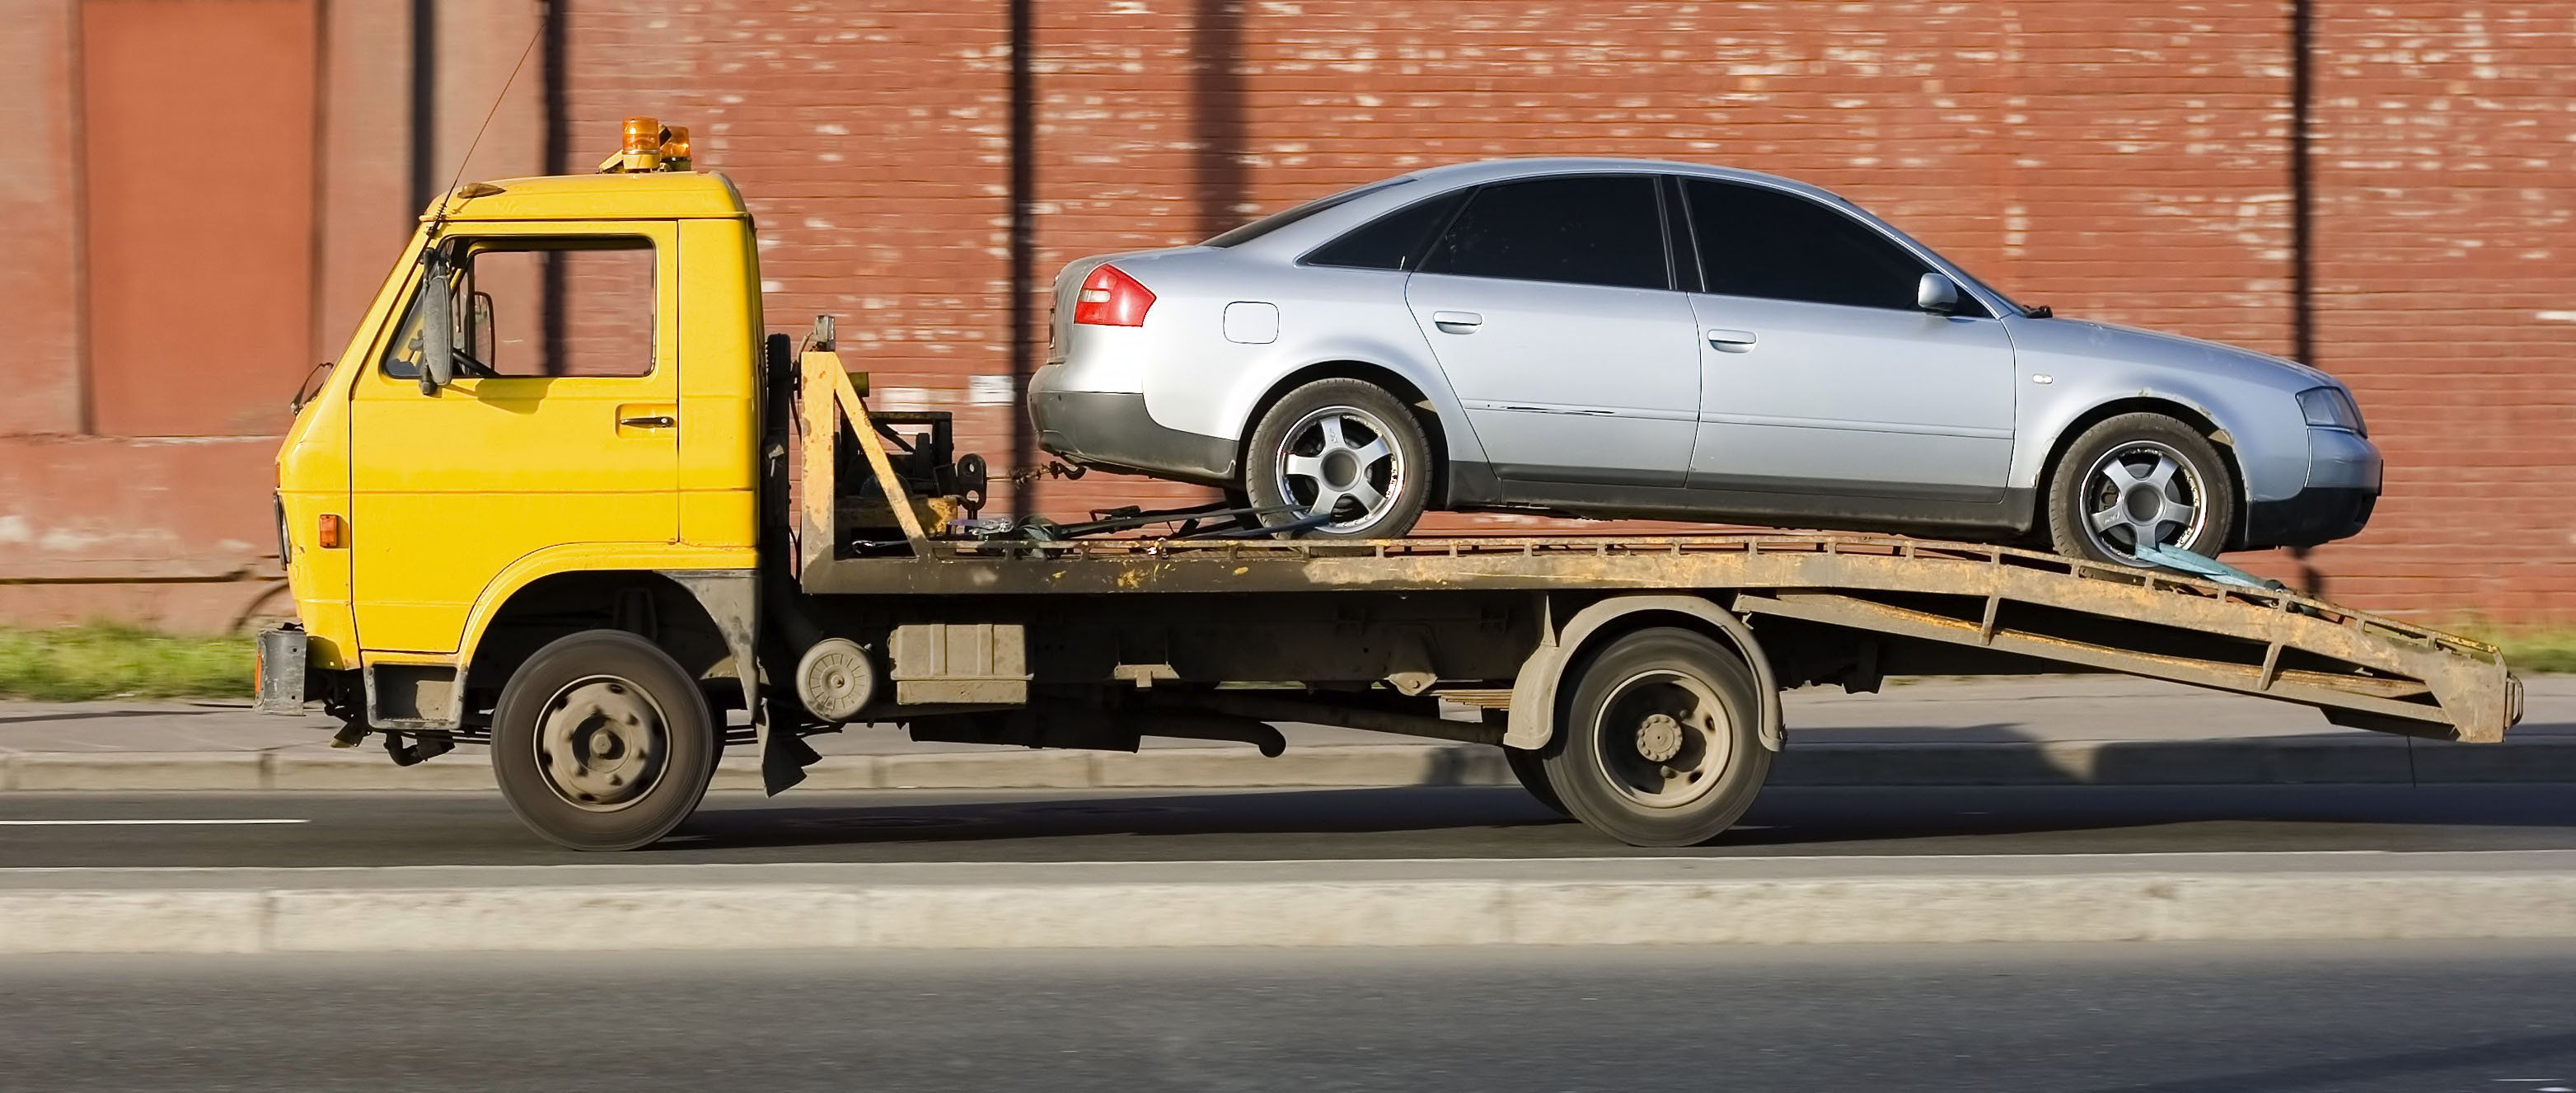 Sell Your Car | Unwanted Vehicle | Pearland, TX